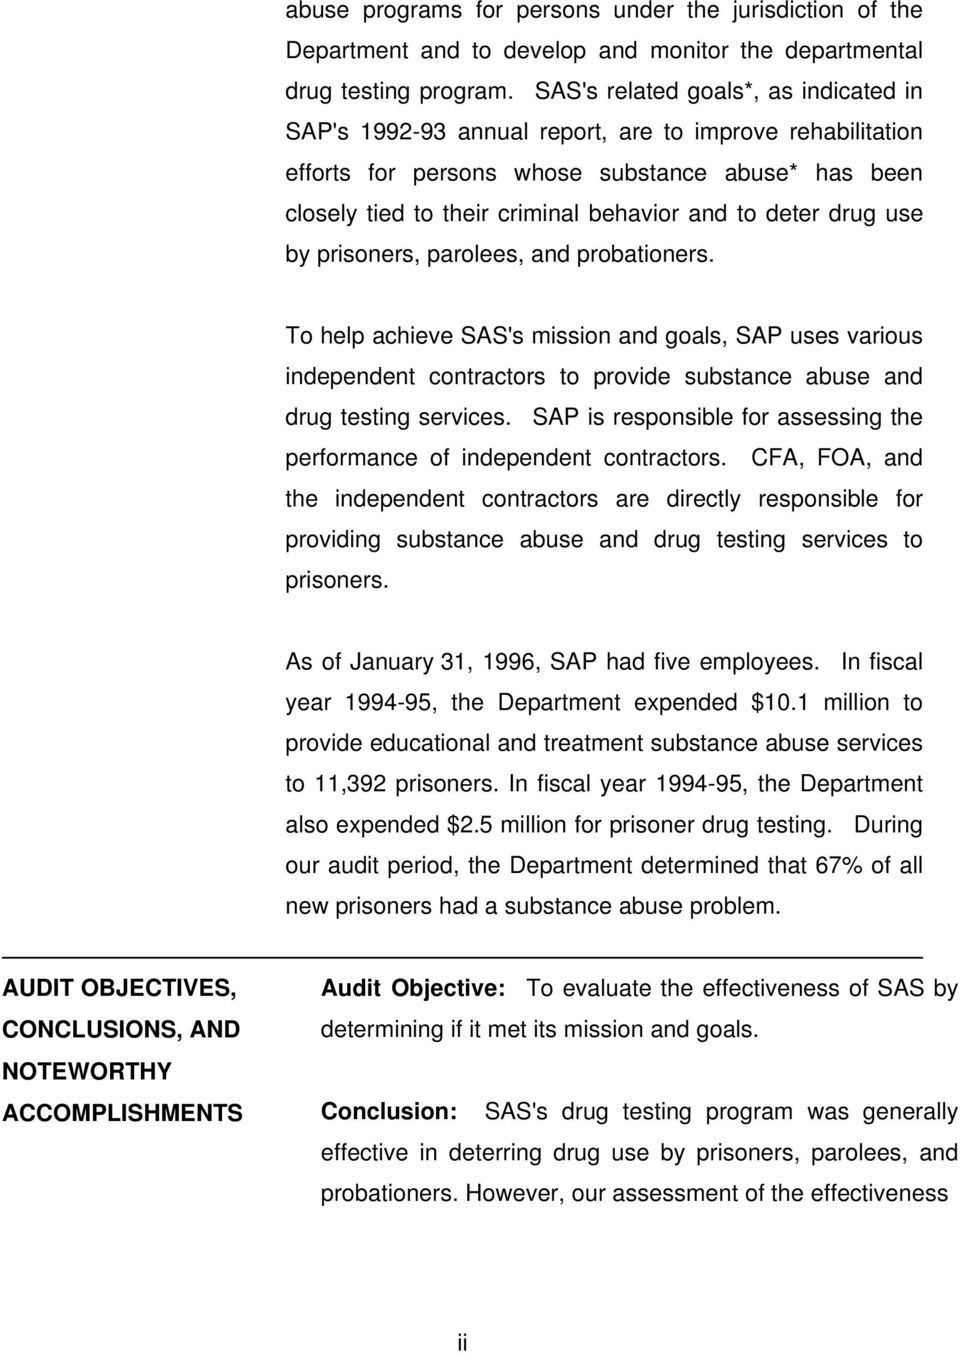 deter drug use by prisoners, parolees, and probationers. To help achieve SAS's mission and goals, SAP uses various independent contractors to provide substance abuse and drug testing services.